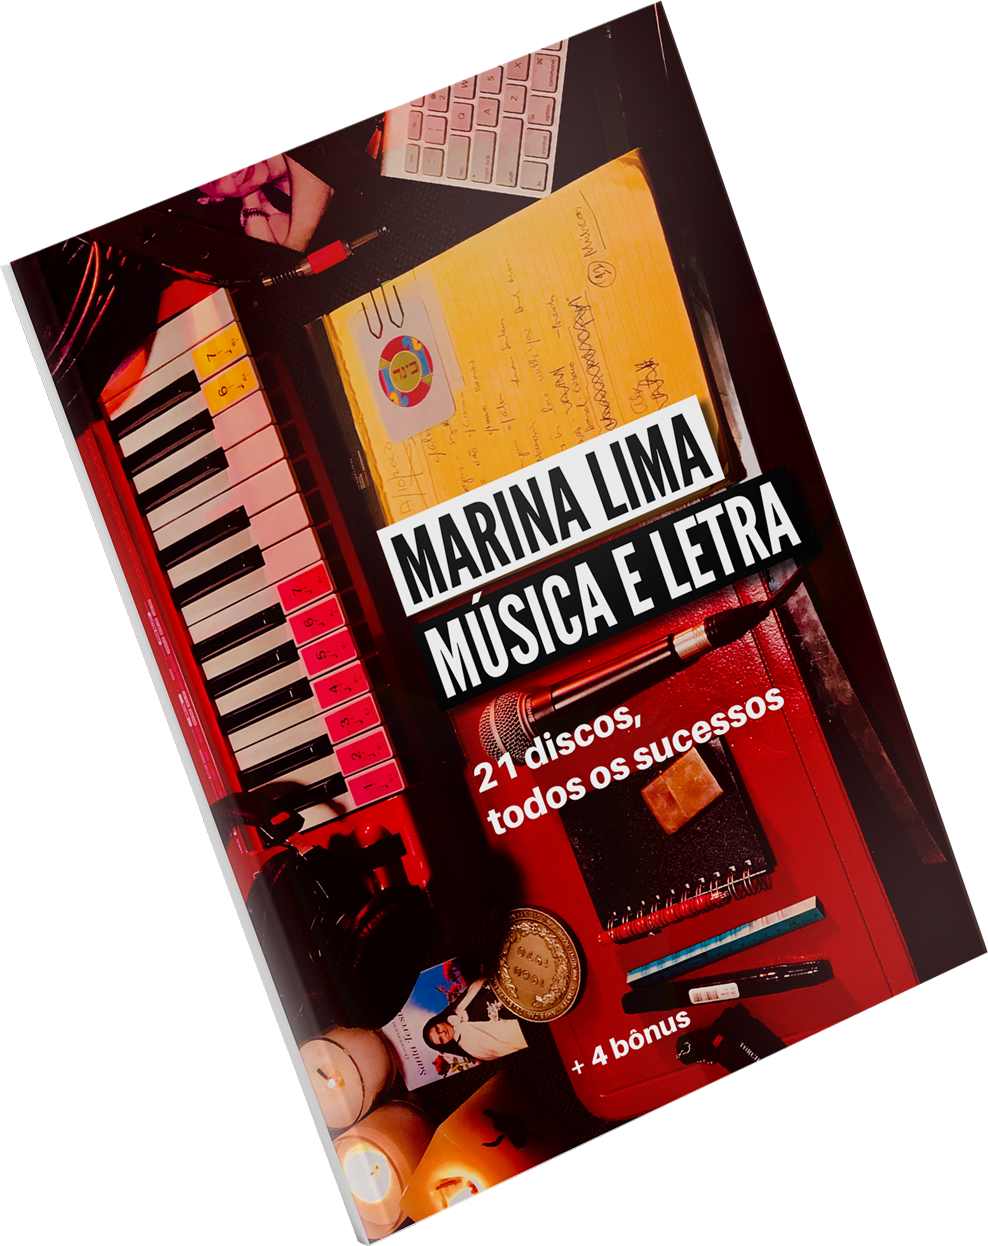 http://marinalima.com.br/wp-content/uploads/2021/02/songbook-2.png